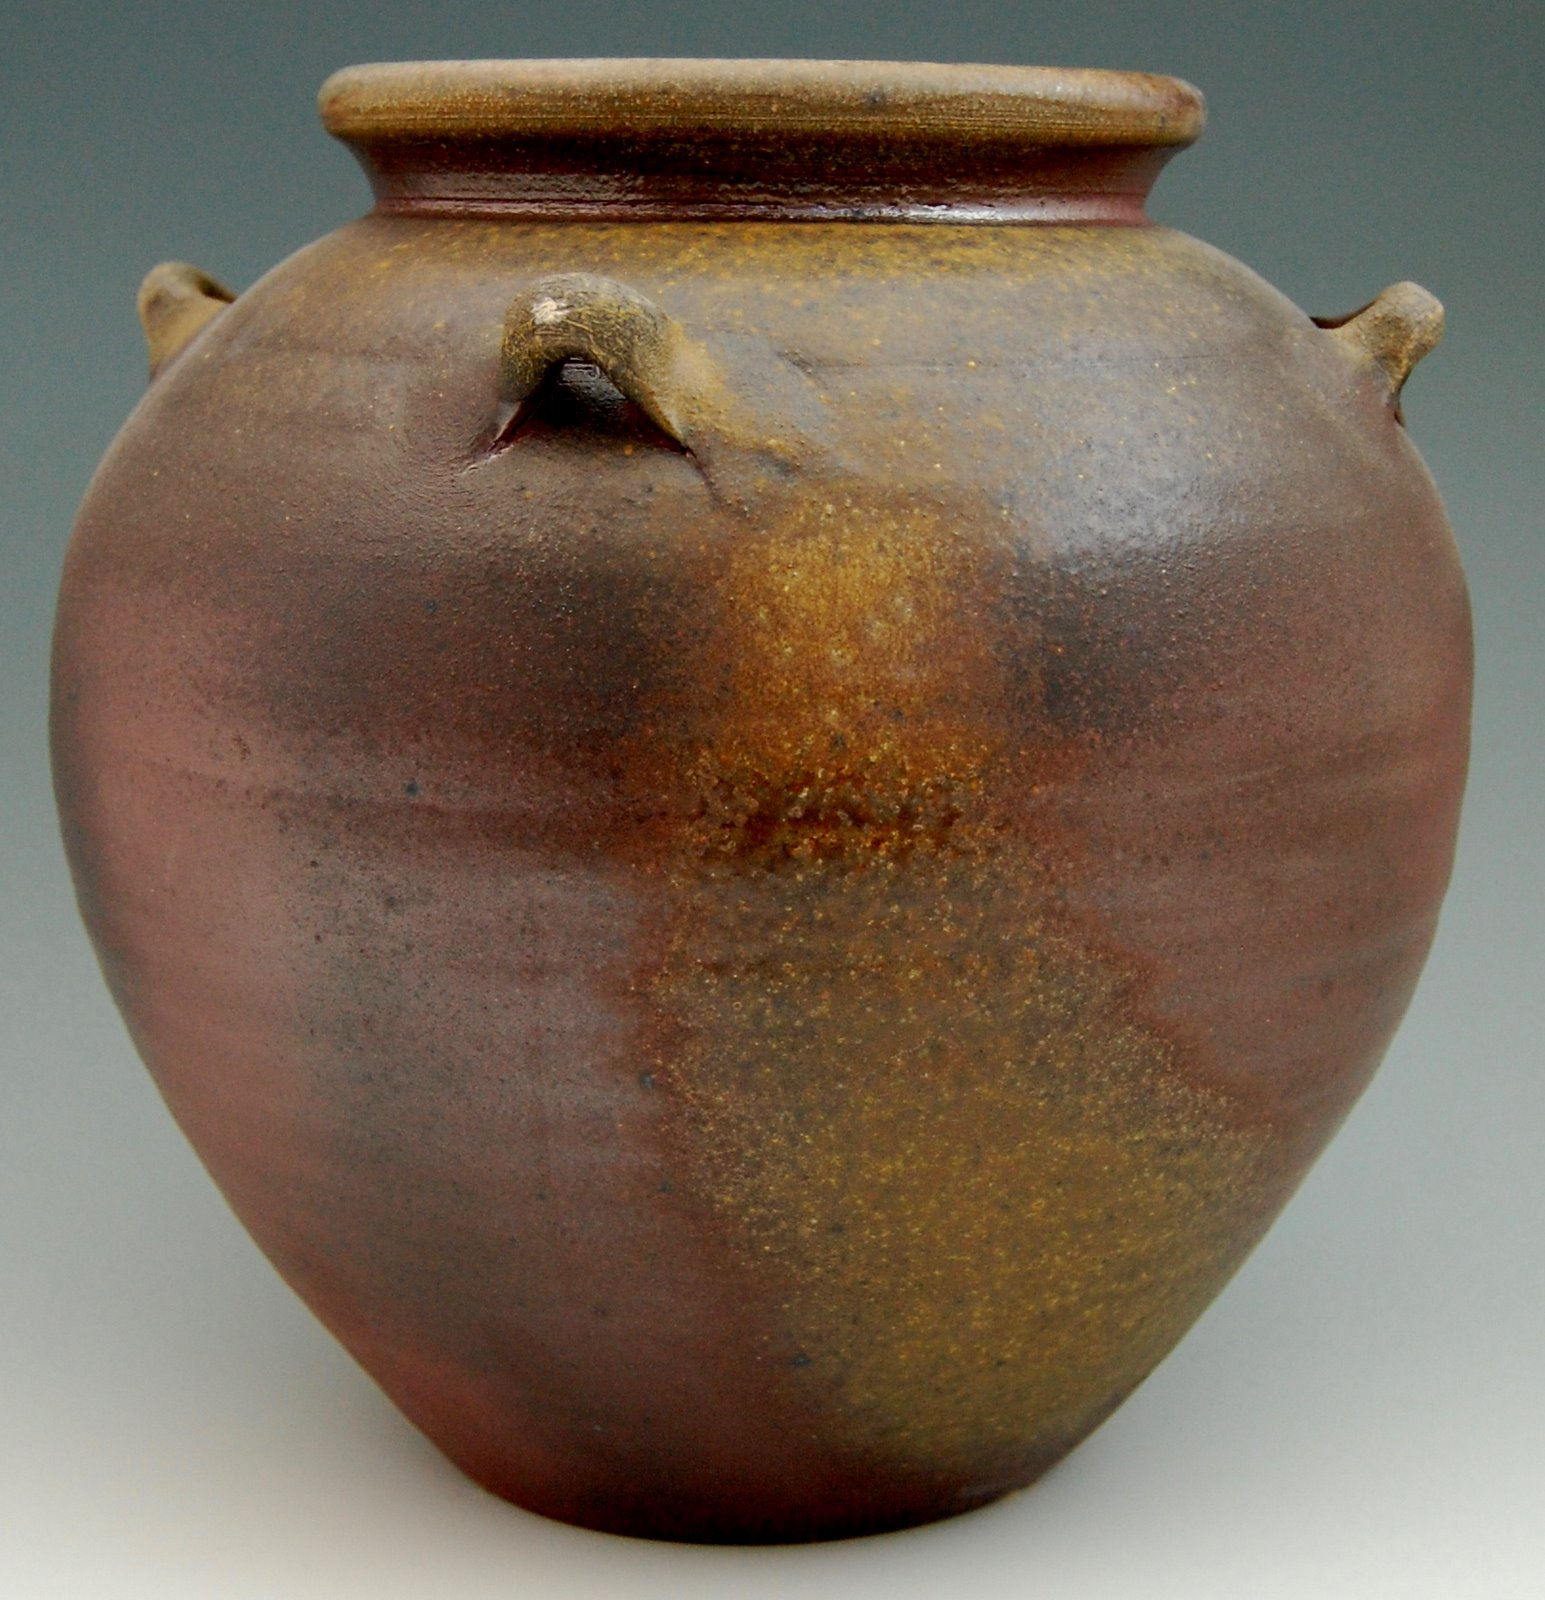 Fire Made Of Clay : Wood fired pottery two tsubo and a chawan made from mid